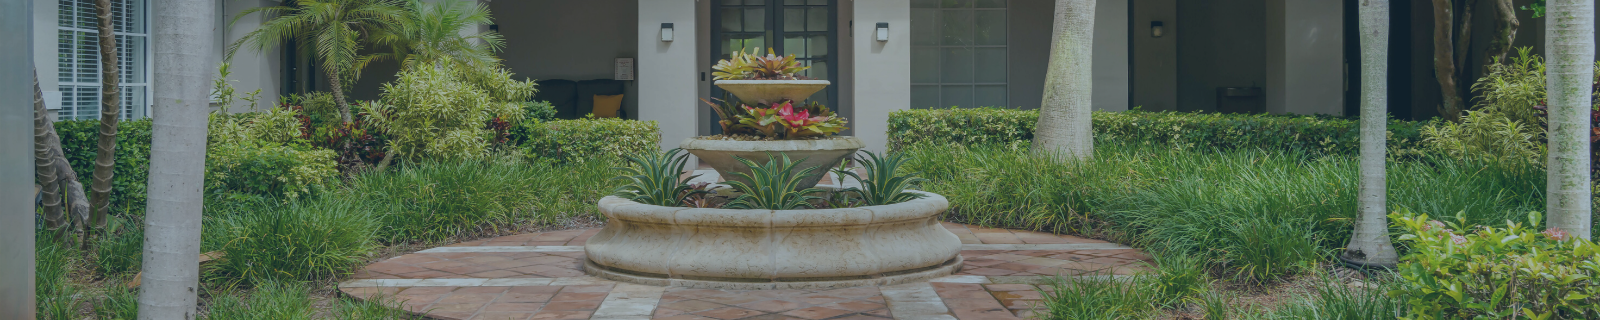 Courtyard area with pave stones, fountain,  bushes and landscaping